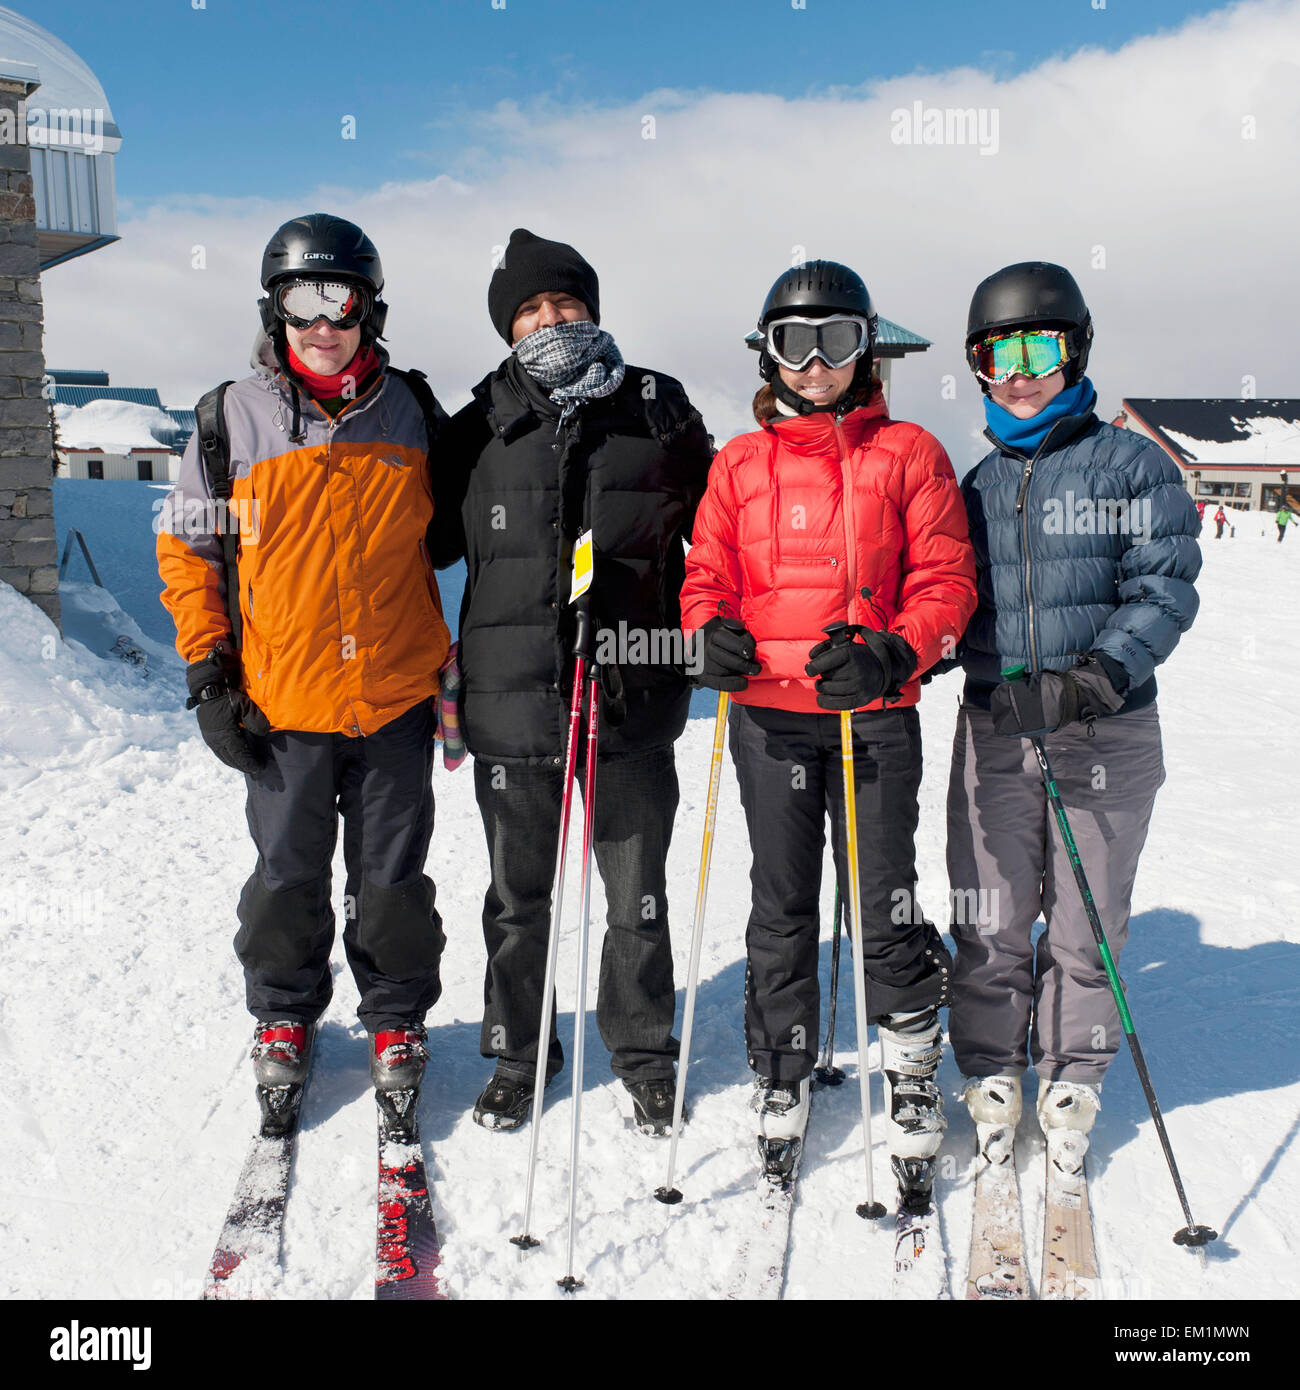 Four Skiers Ready To Go At A Ski Resort; Whistler British Columbia Canada - Stock Image